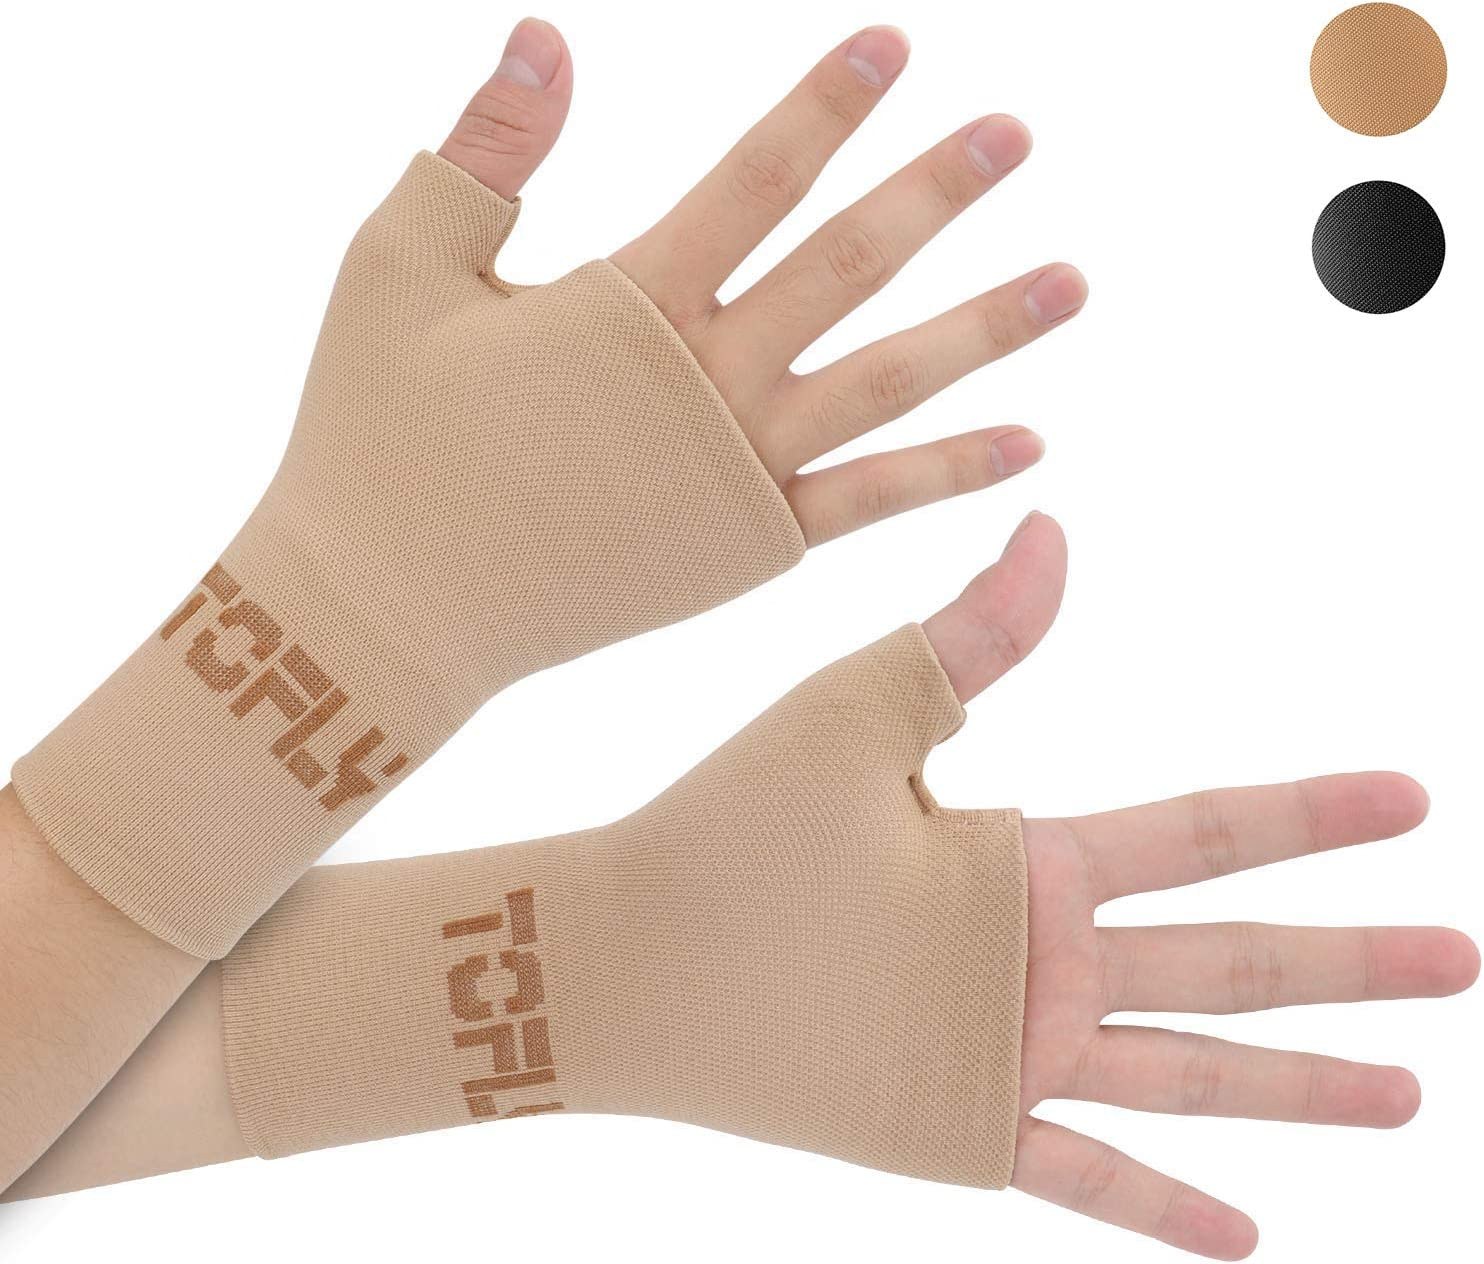 TOFLY Wrist & Thumb Support Sleeve, 1 Pair Compression Arthritis Gloves for Unisex, Ideal for Carpal Tunnel, Wrist Pain & Fatigue, Sprains, RSI, Tendonitis, Hand Instability, Sports, Typing, Beige M